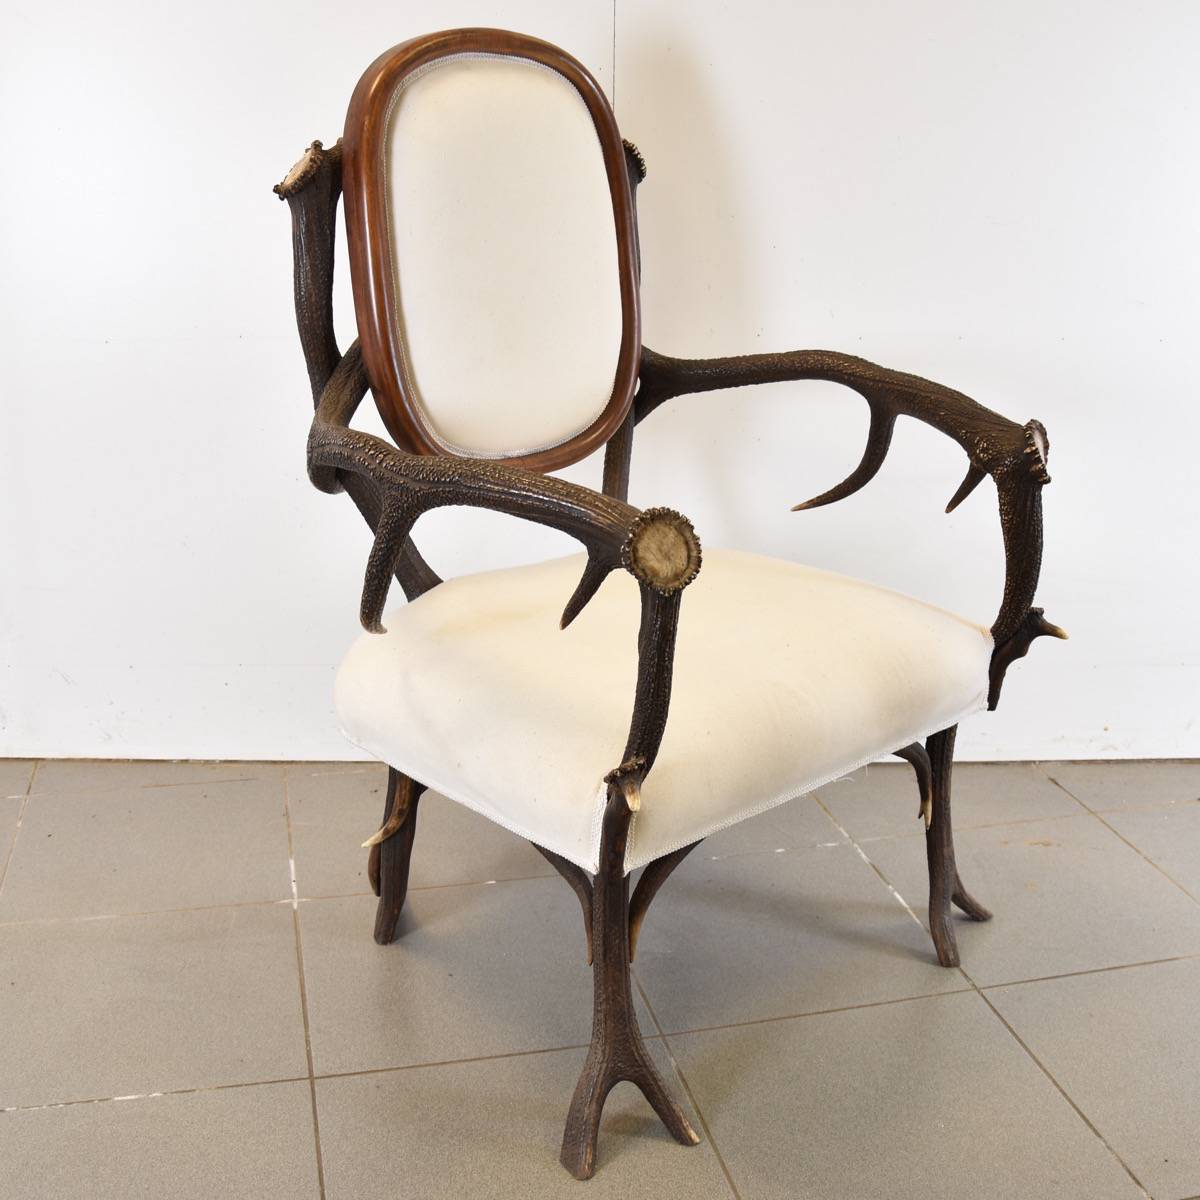 Decorative deer antler hunting chair antique furniture for Antique furniture and decoration accessories